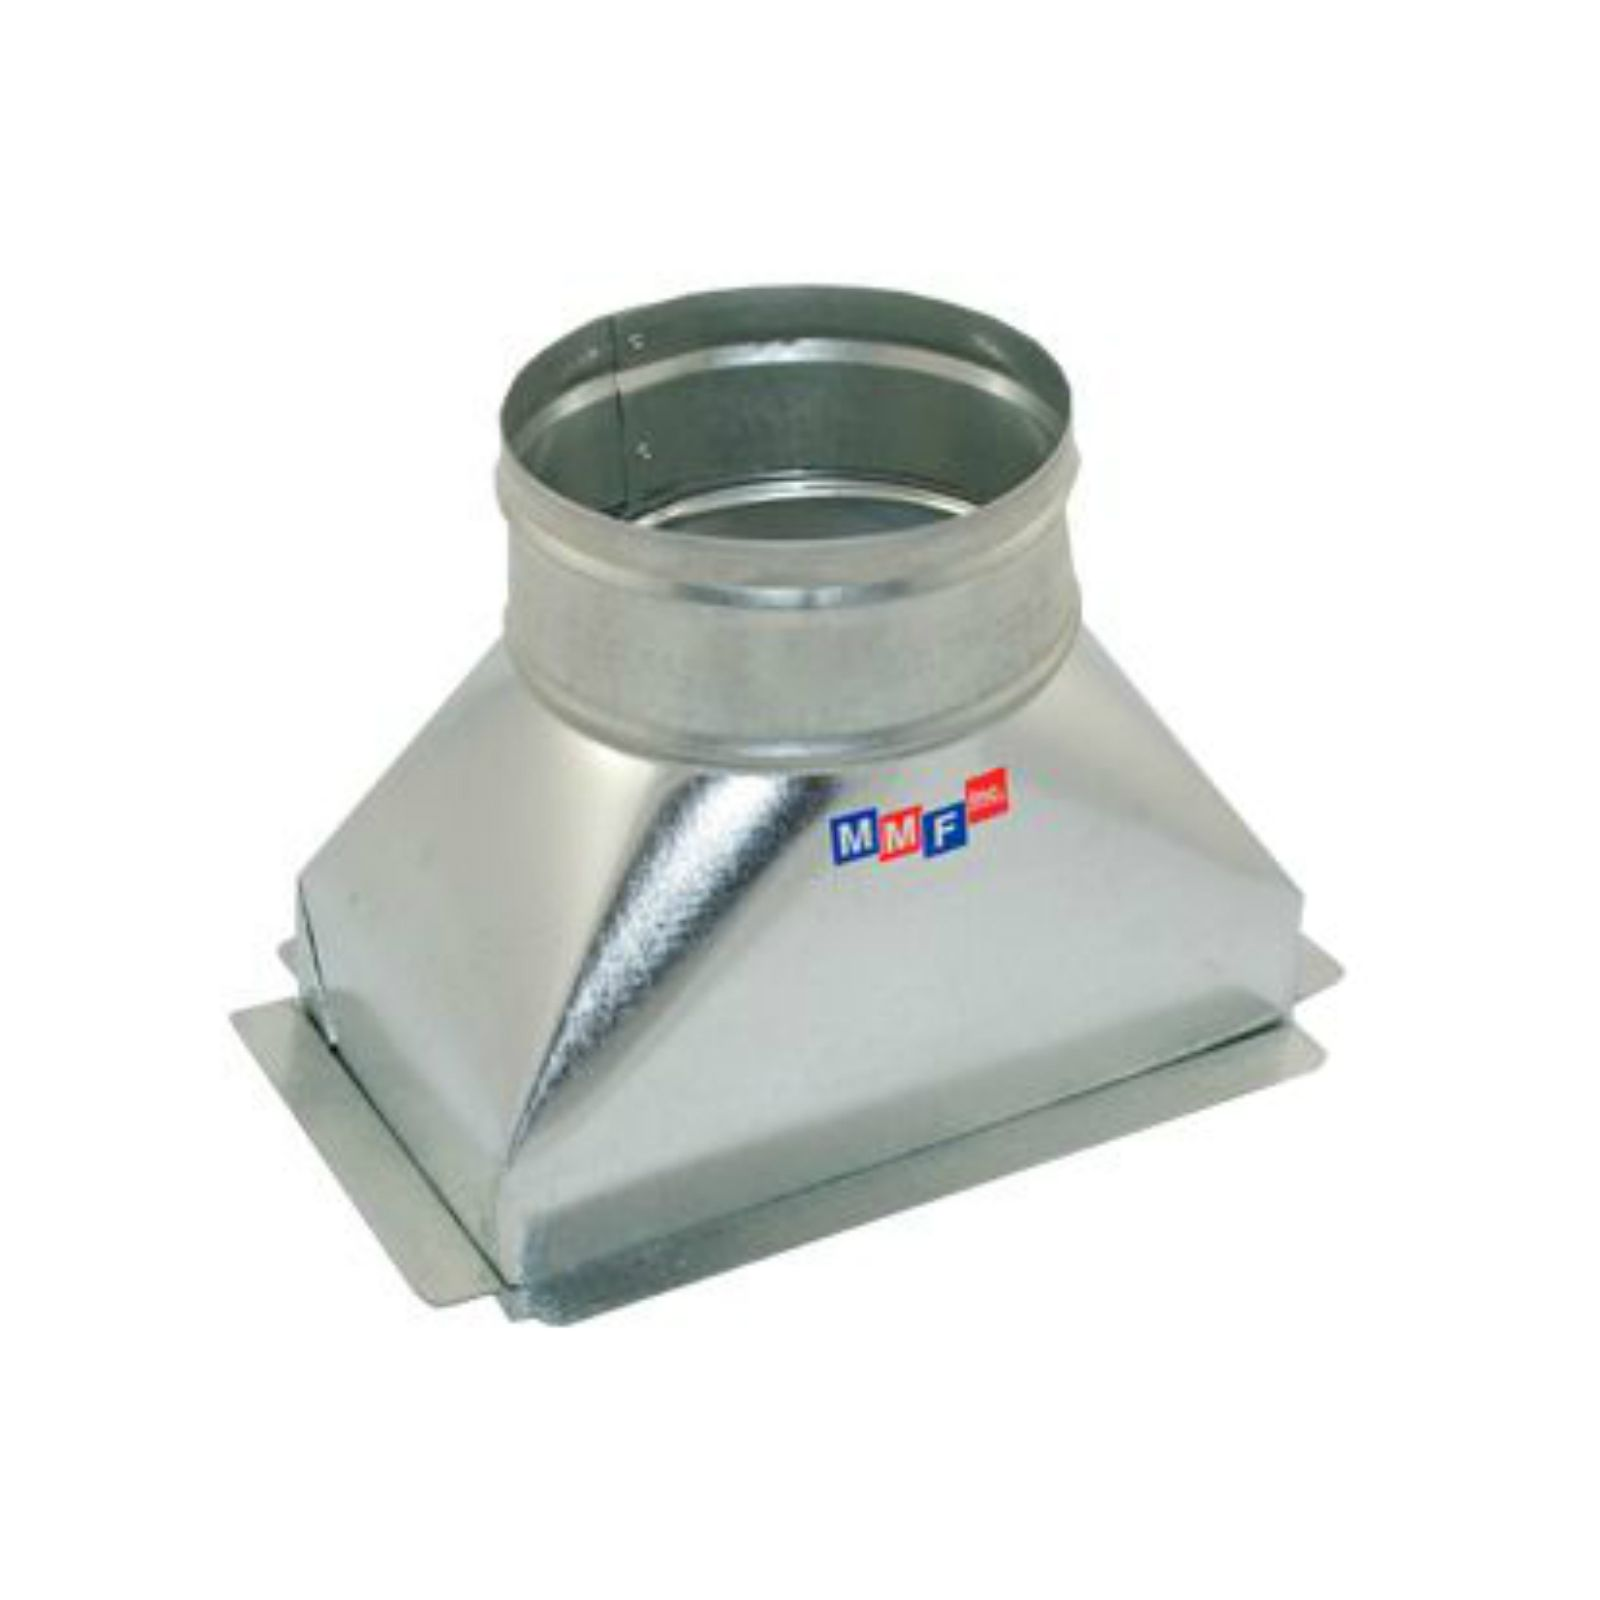 "Modular Metal BTSFG100406E - Sealed Floor Box - 30 Gauge 10"" X 04"" X 06"" Round - With Plaster Ground Flange & Ears"